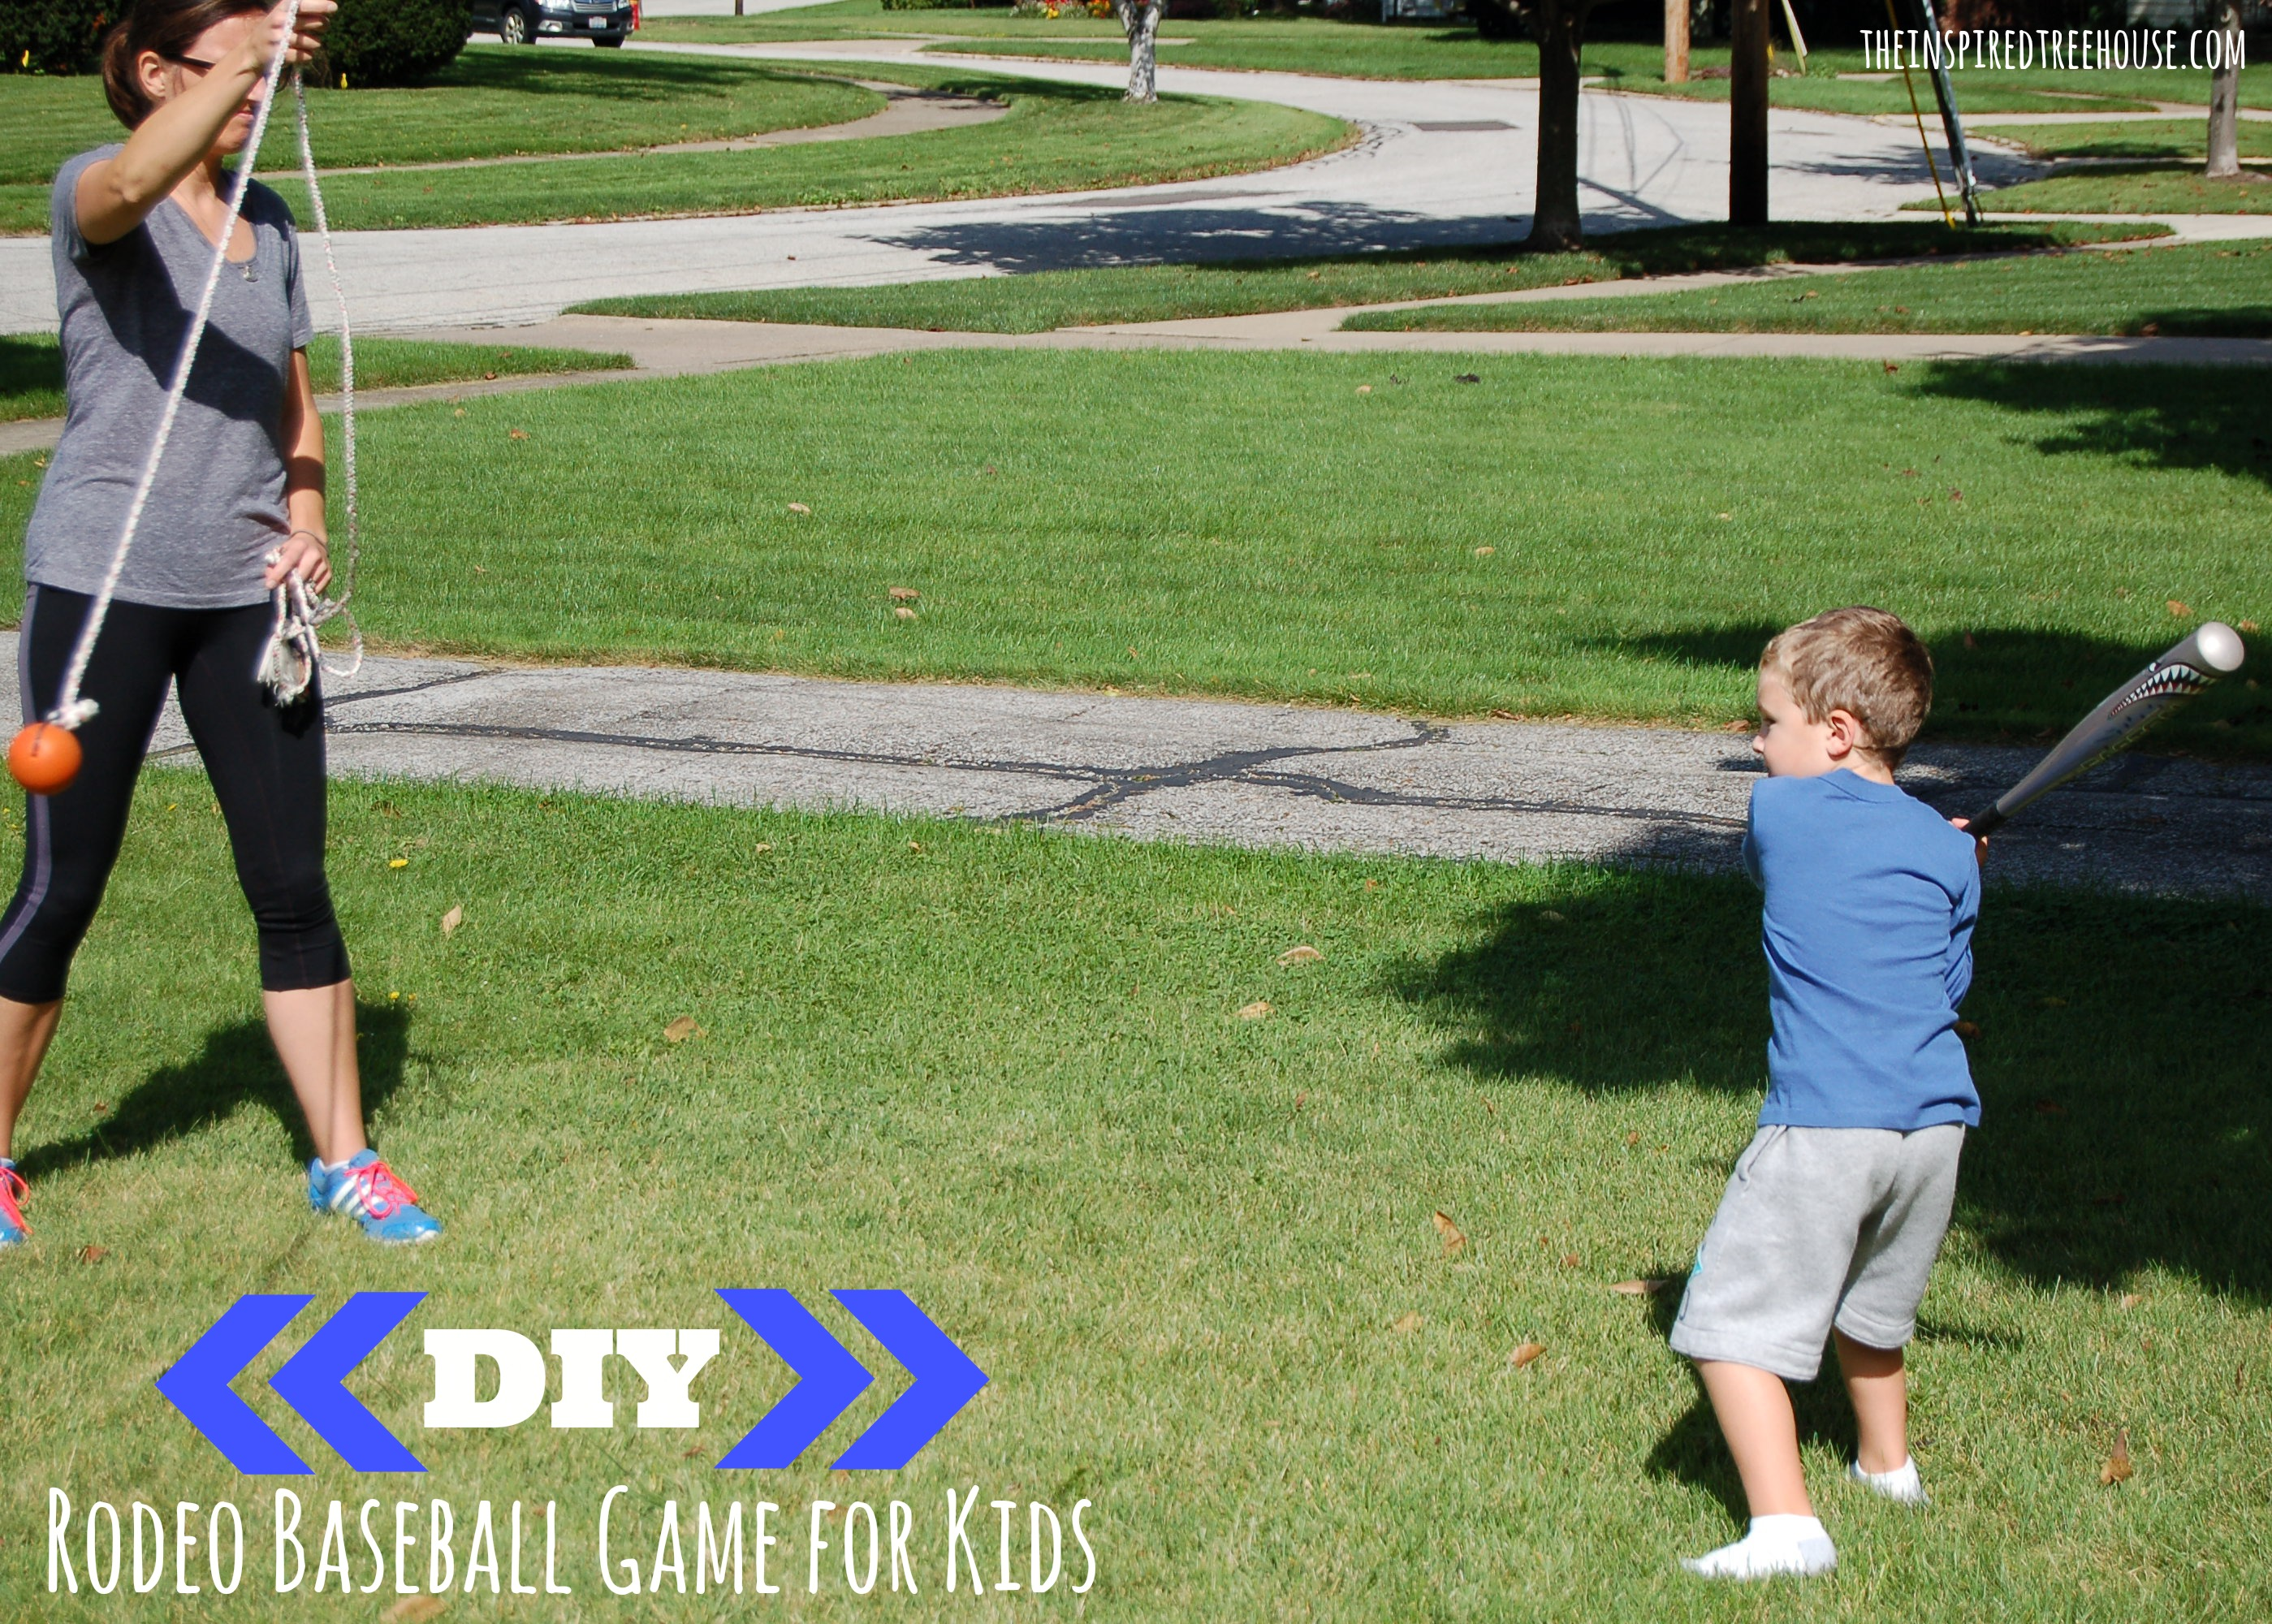 baseball drills3 diy rodeo baseball game for kids